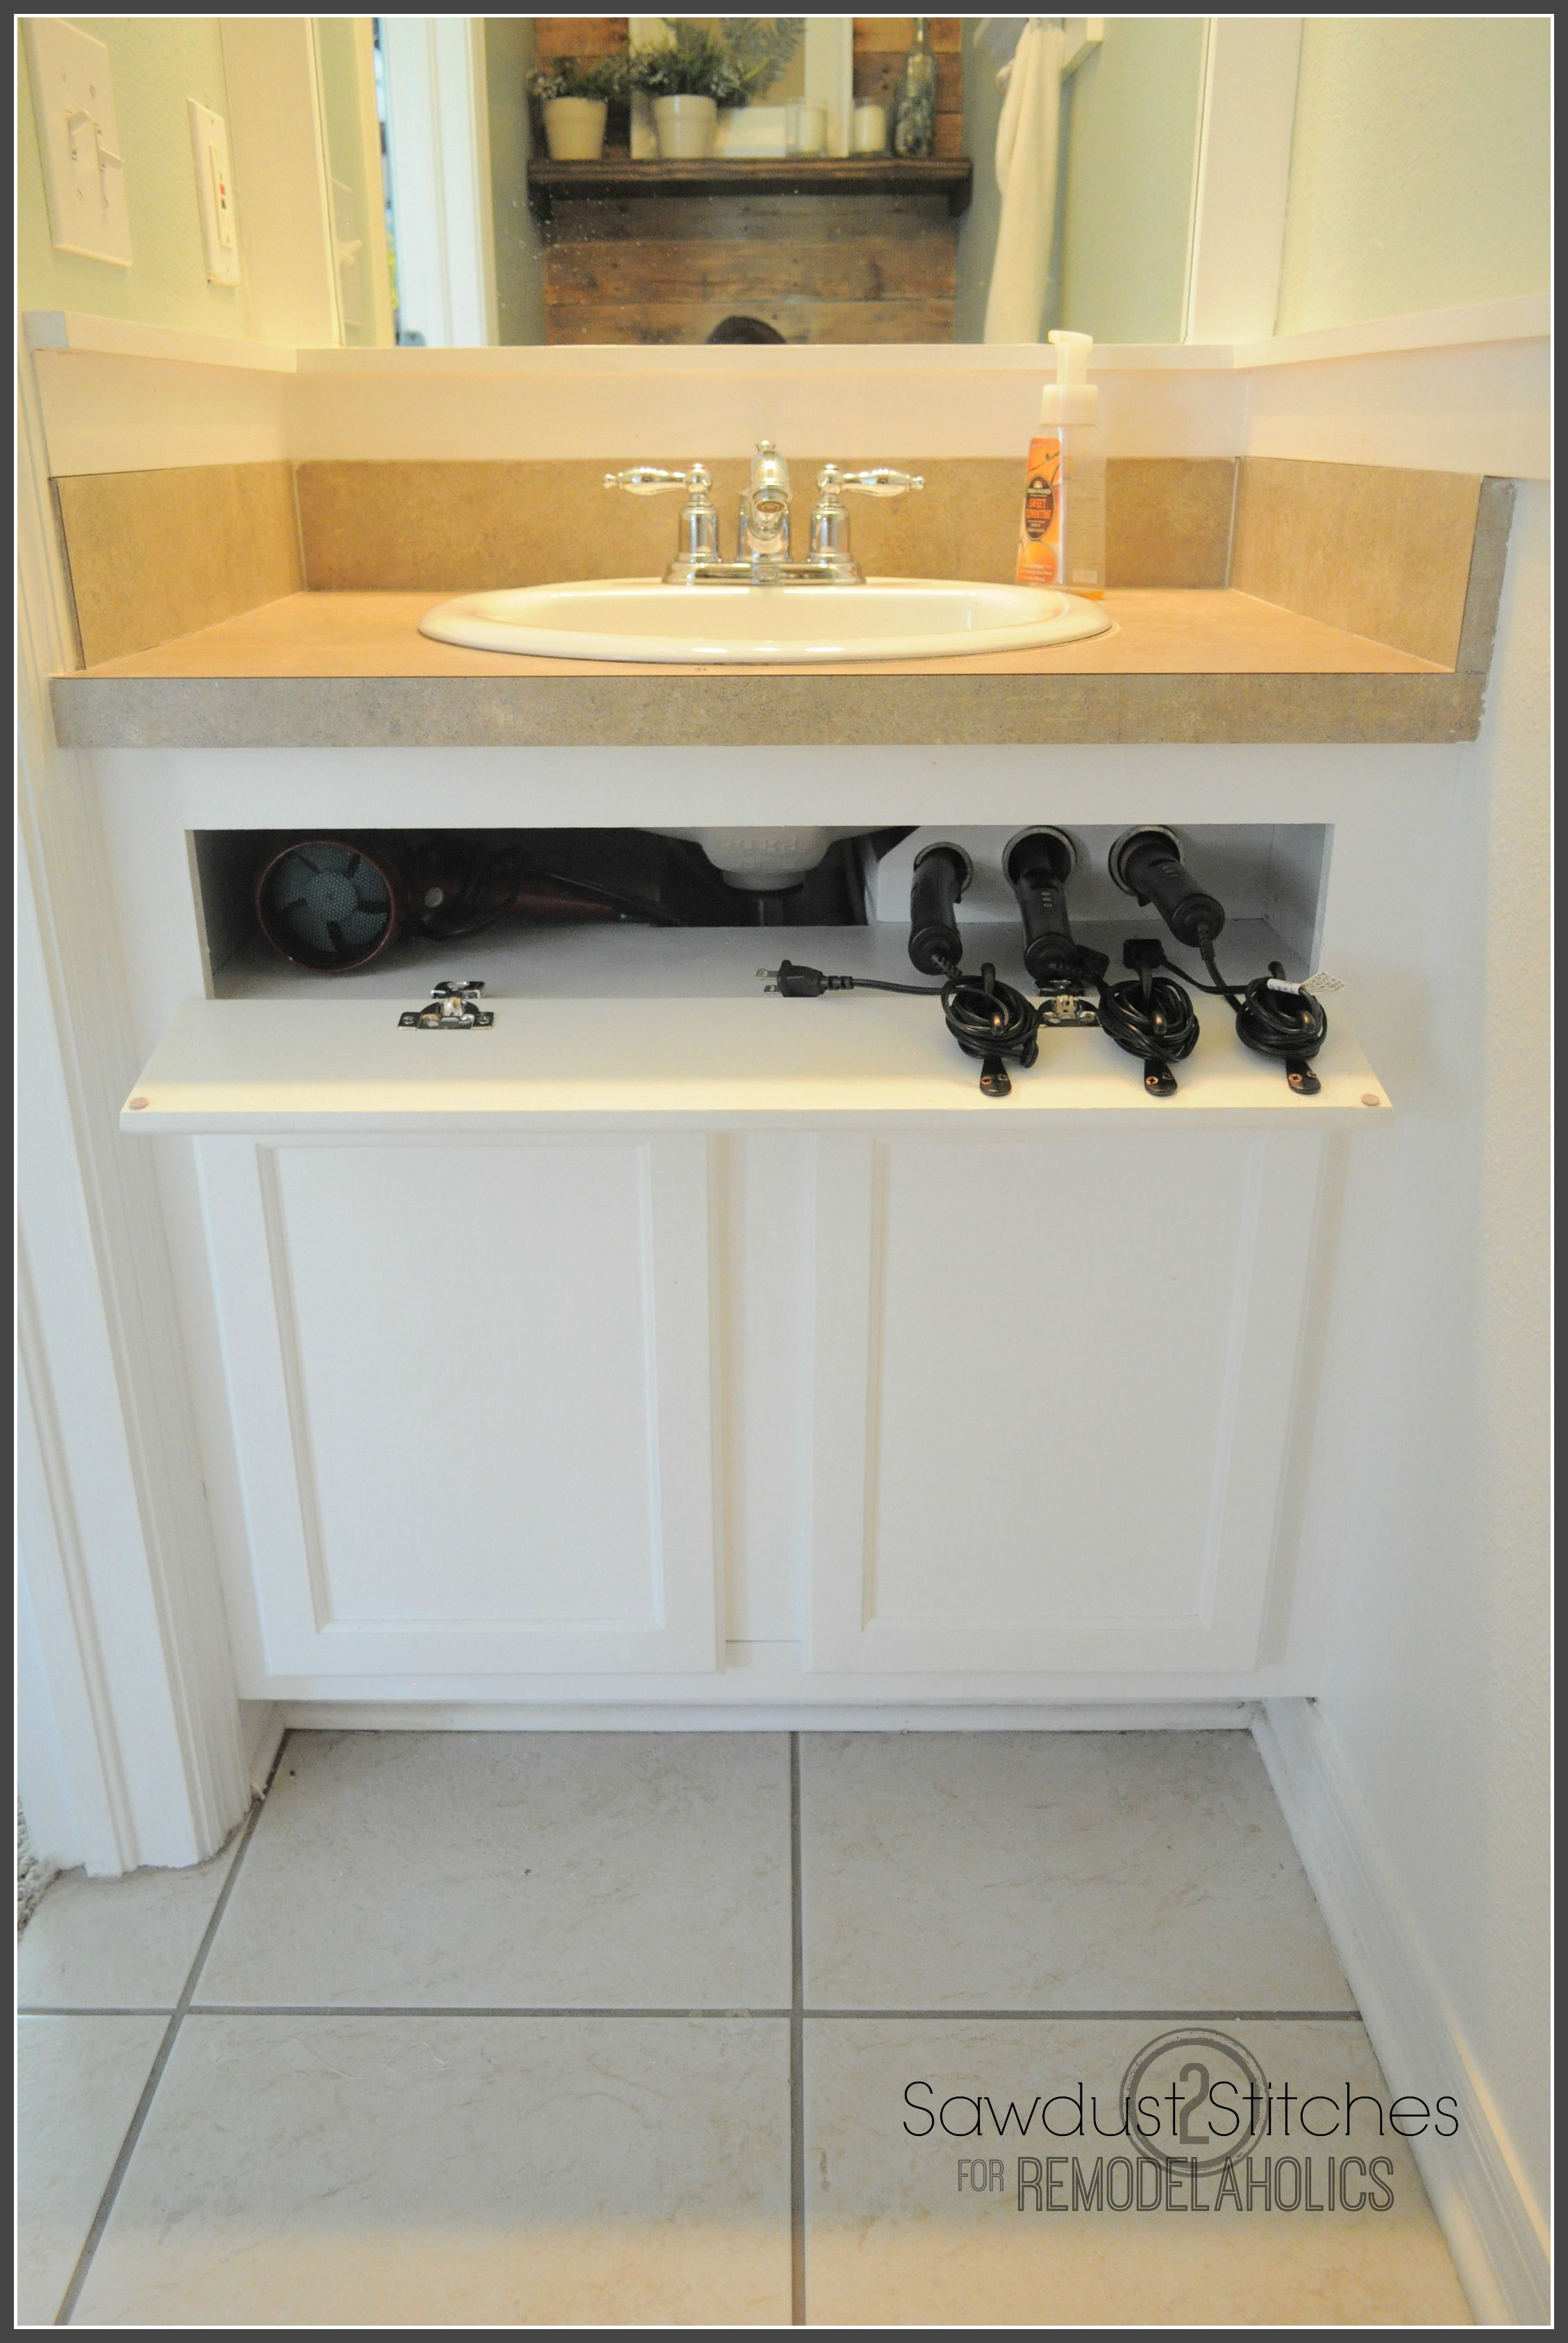 Learn To Build An Under The Sink Hair Tool Storage System To Keep Your Hair  Appliances Off The Counter    Even While They Are Still Hot!